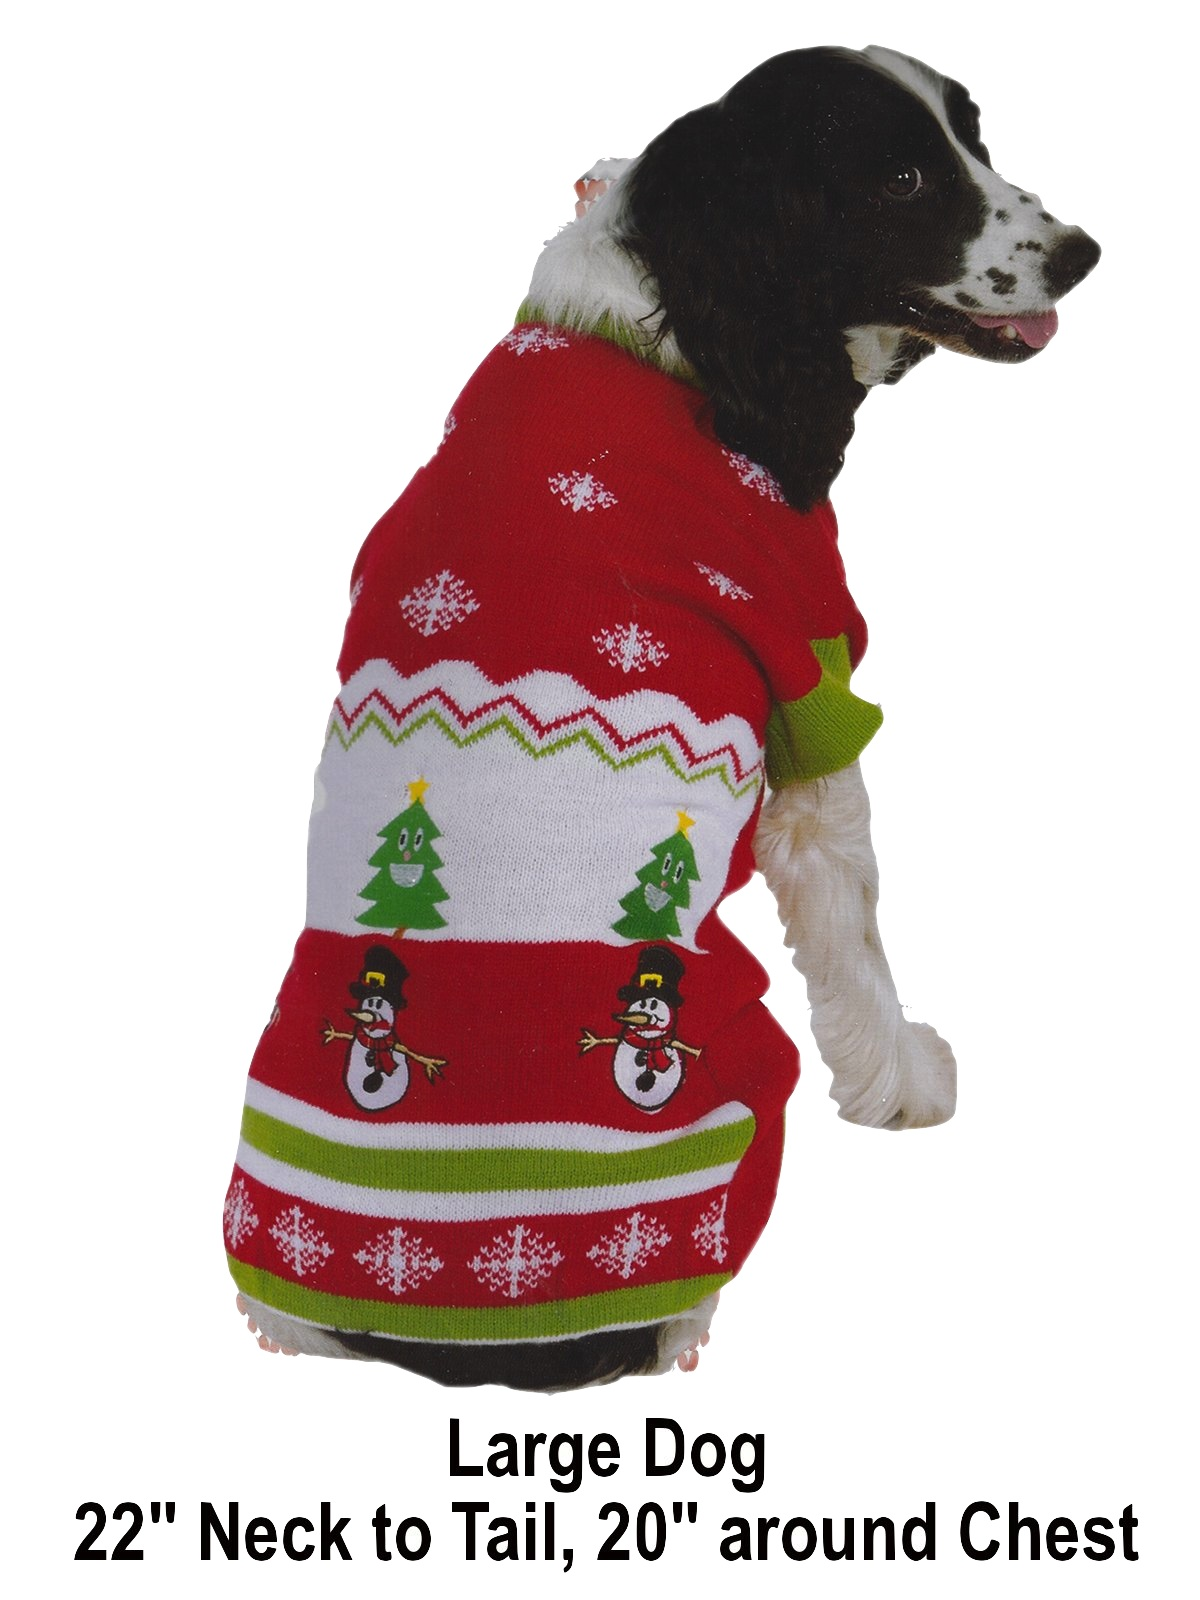 accessories ugly christmas sweater for dogs 90s pet boutique large dog red white and green acrylic knit ugly christmas sweater - Large Dog Christmas Sweaters